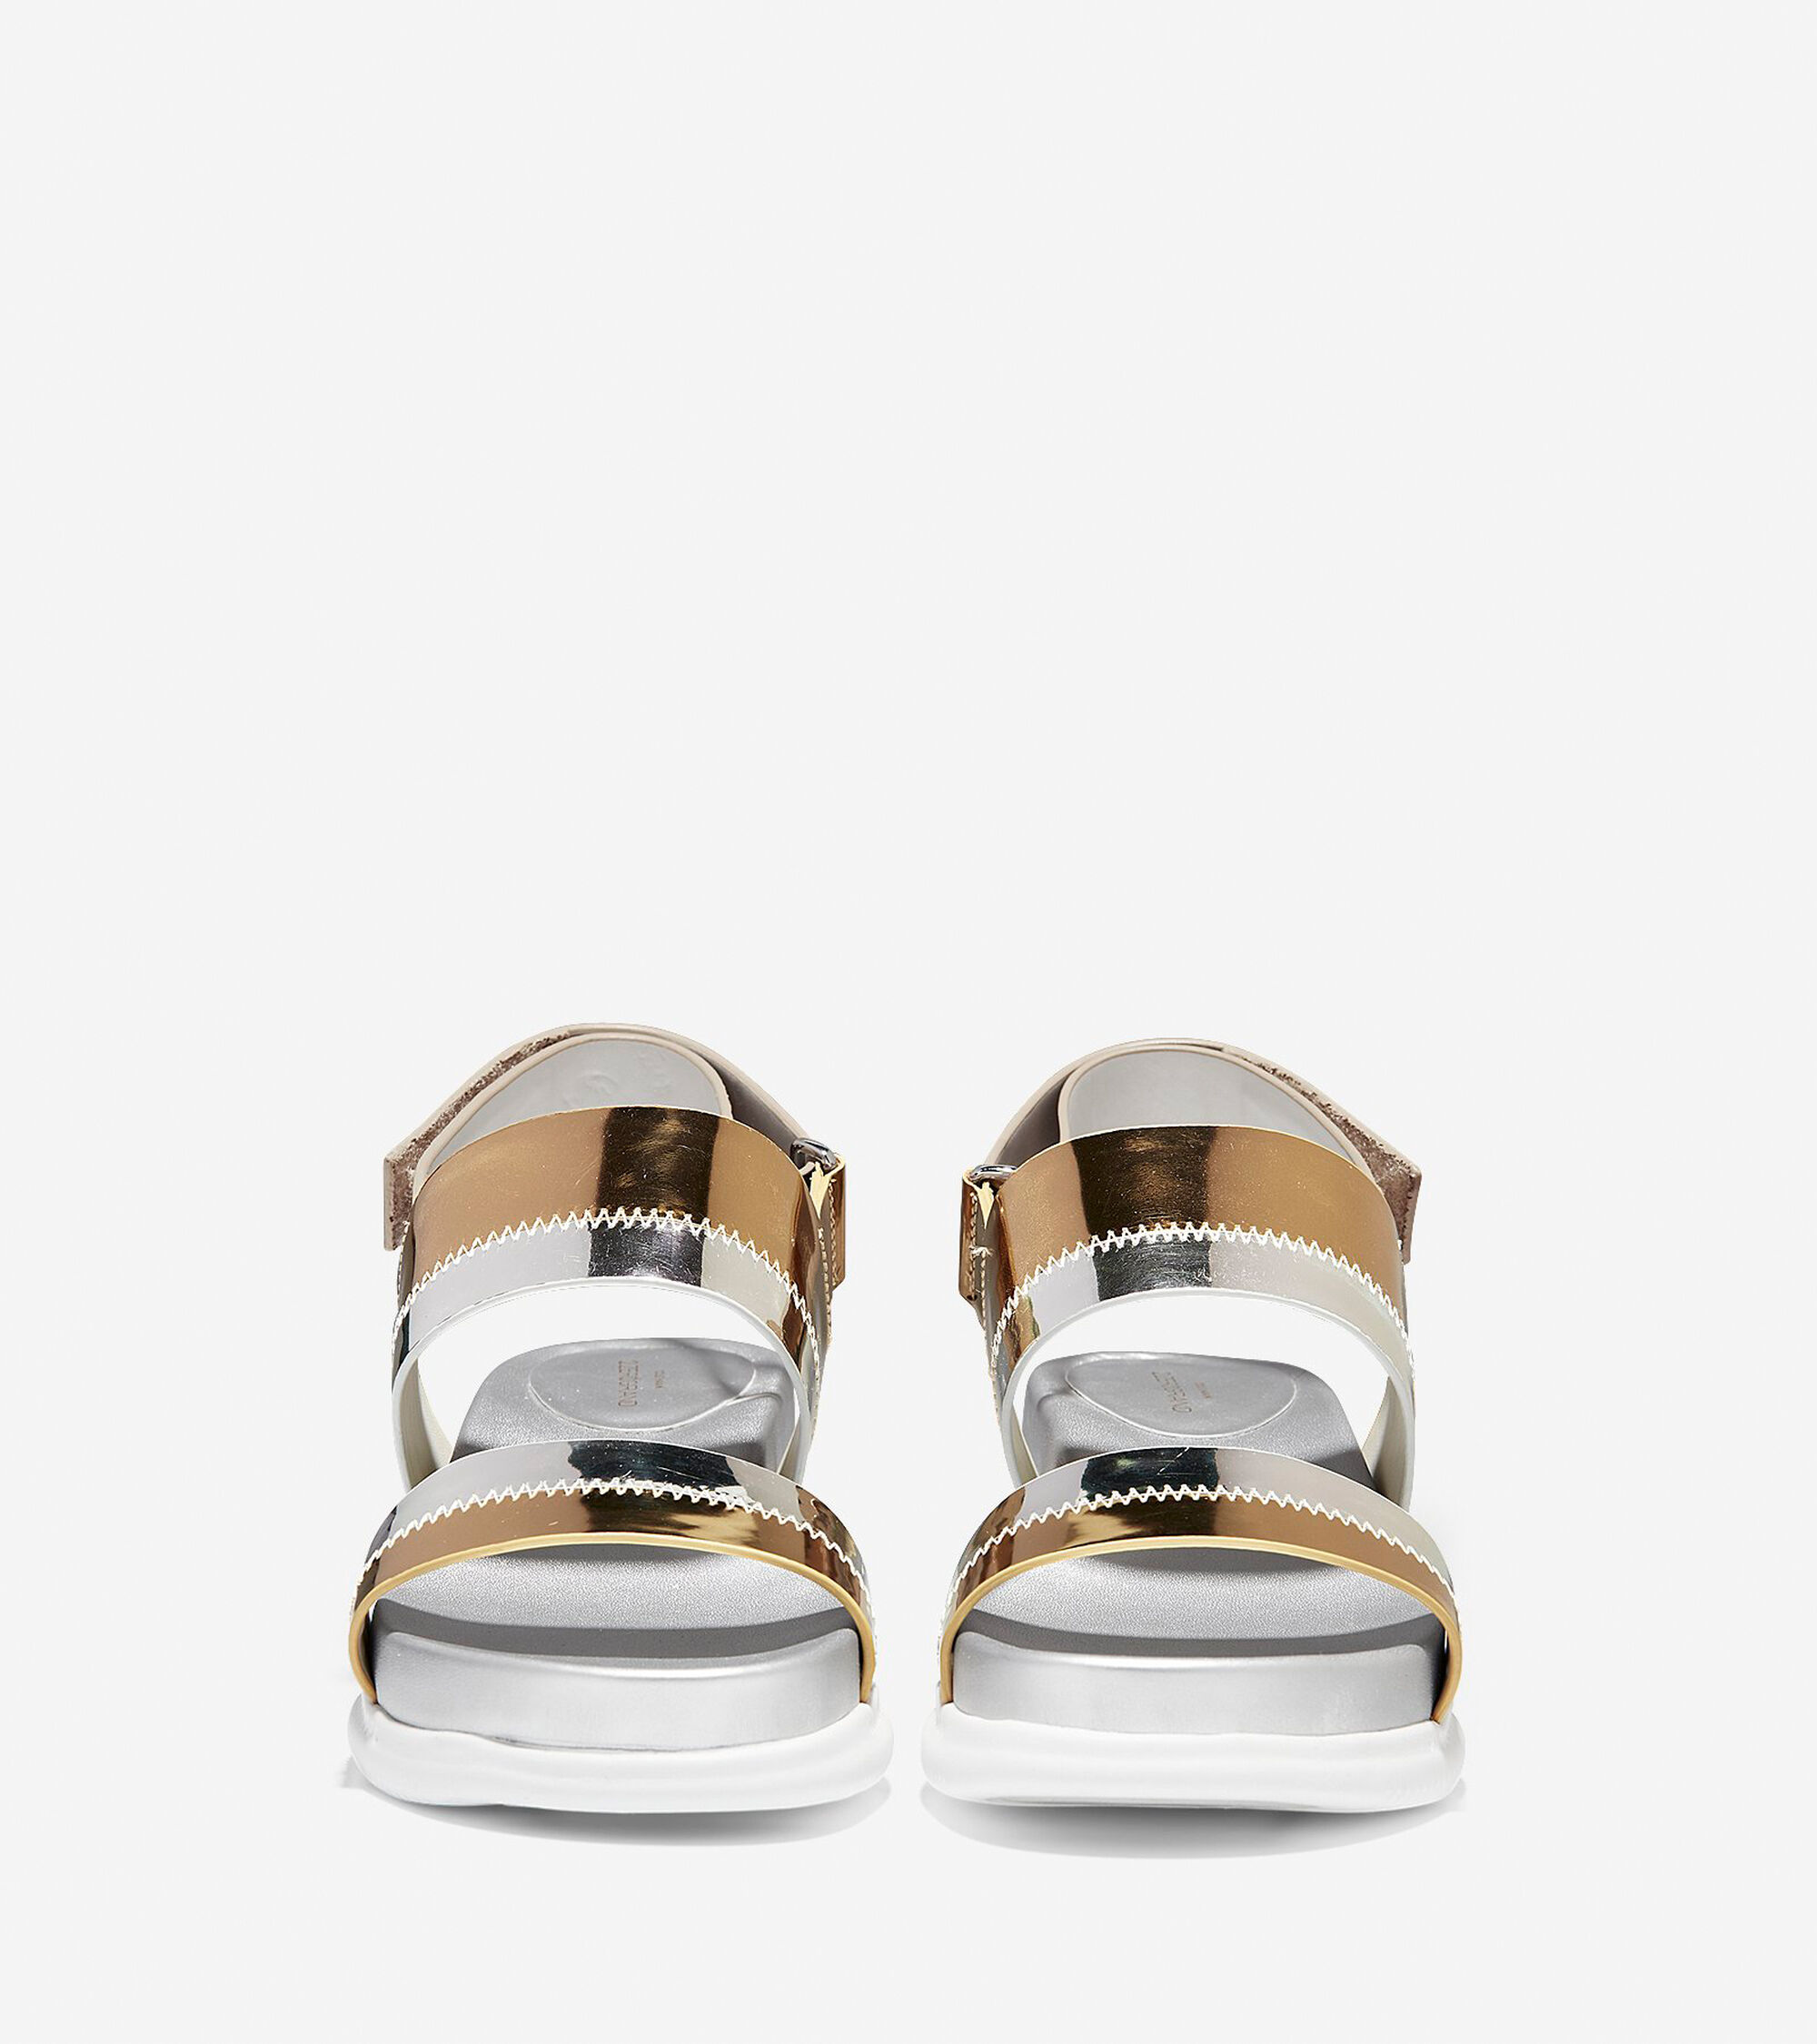 ce8de0d6dce10 Women s 2.ZEROGRAND Slide Sandals in Gold Metallic